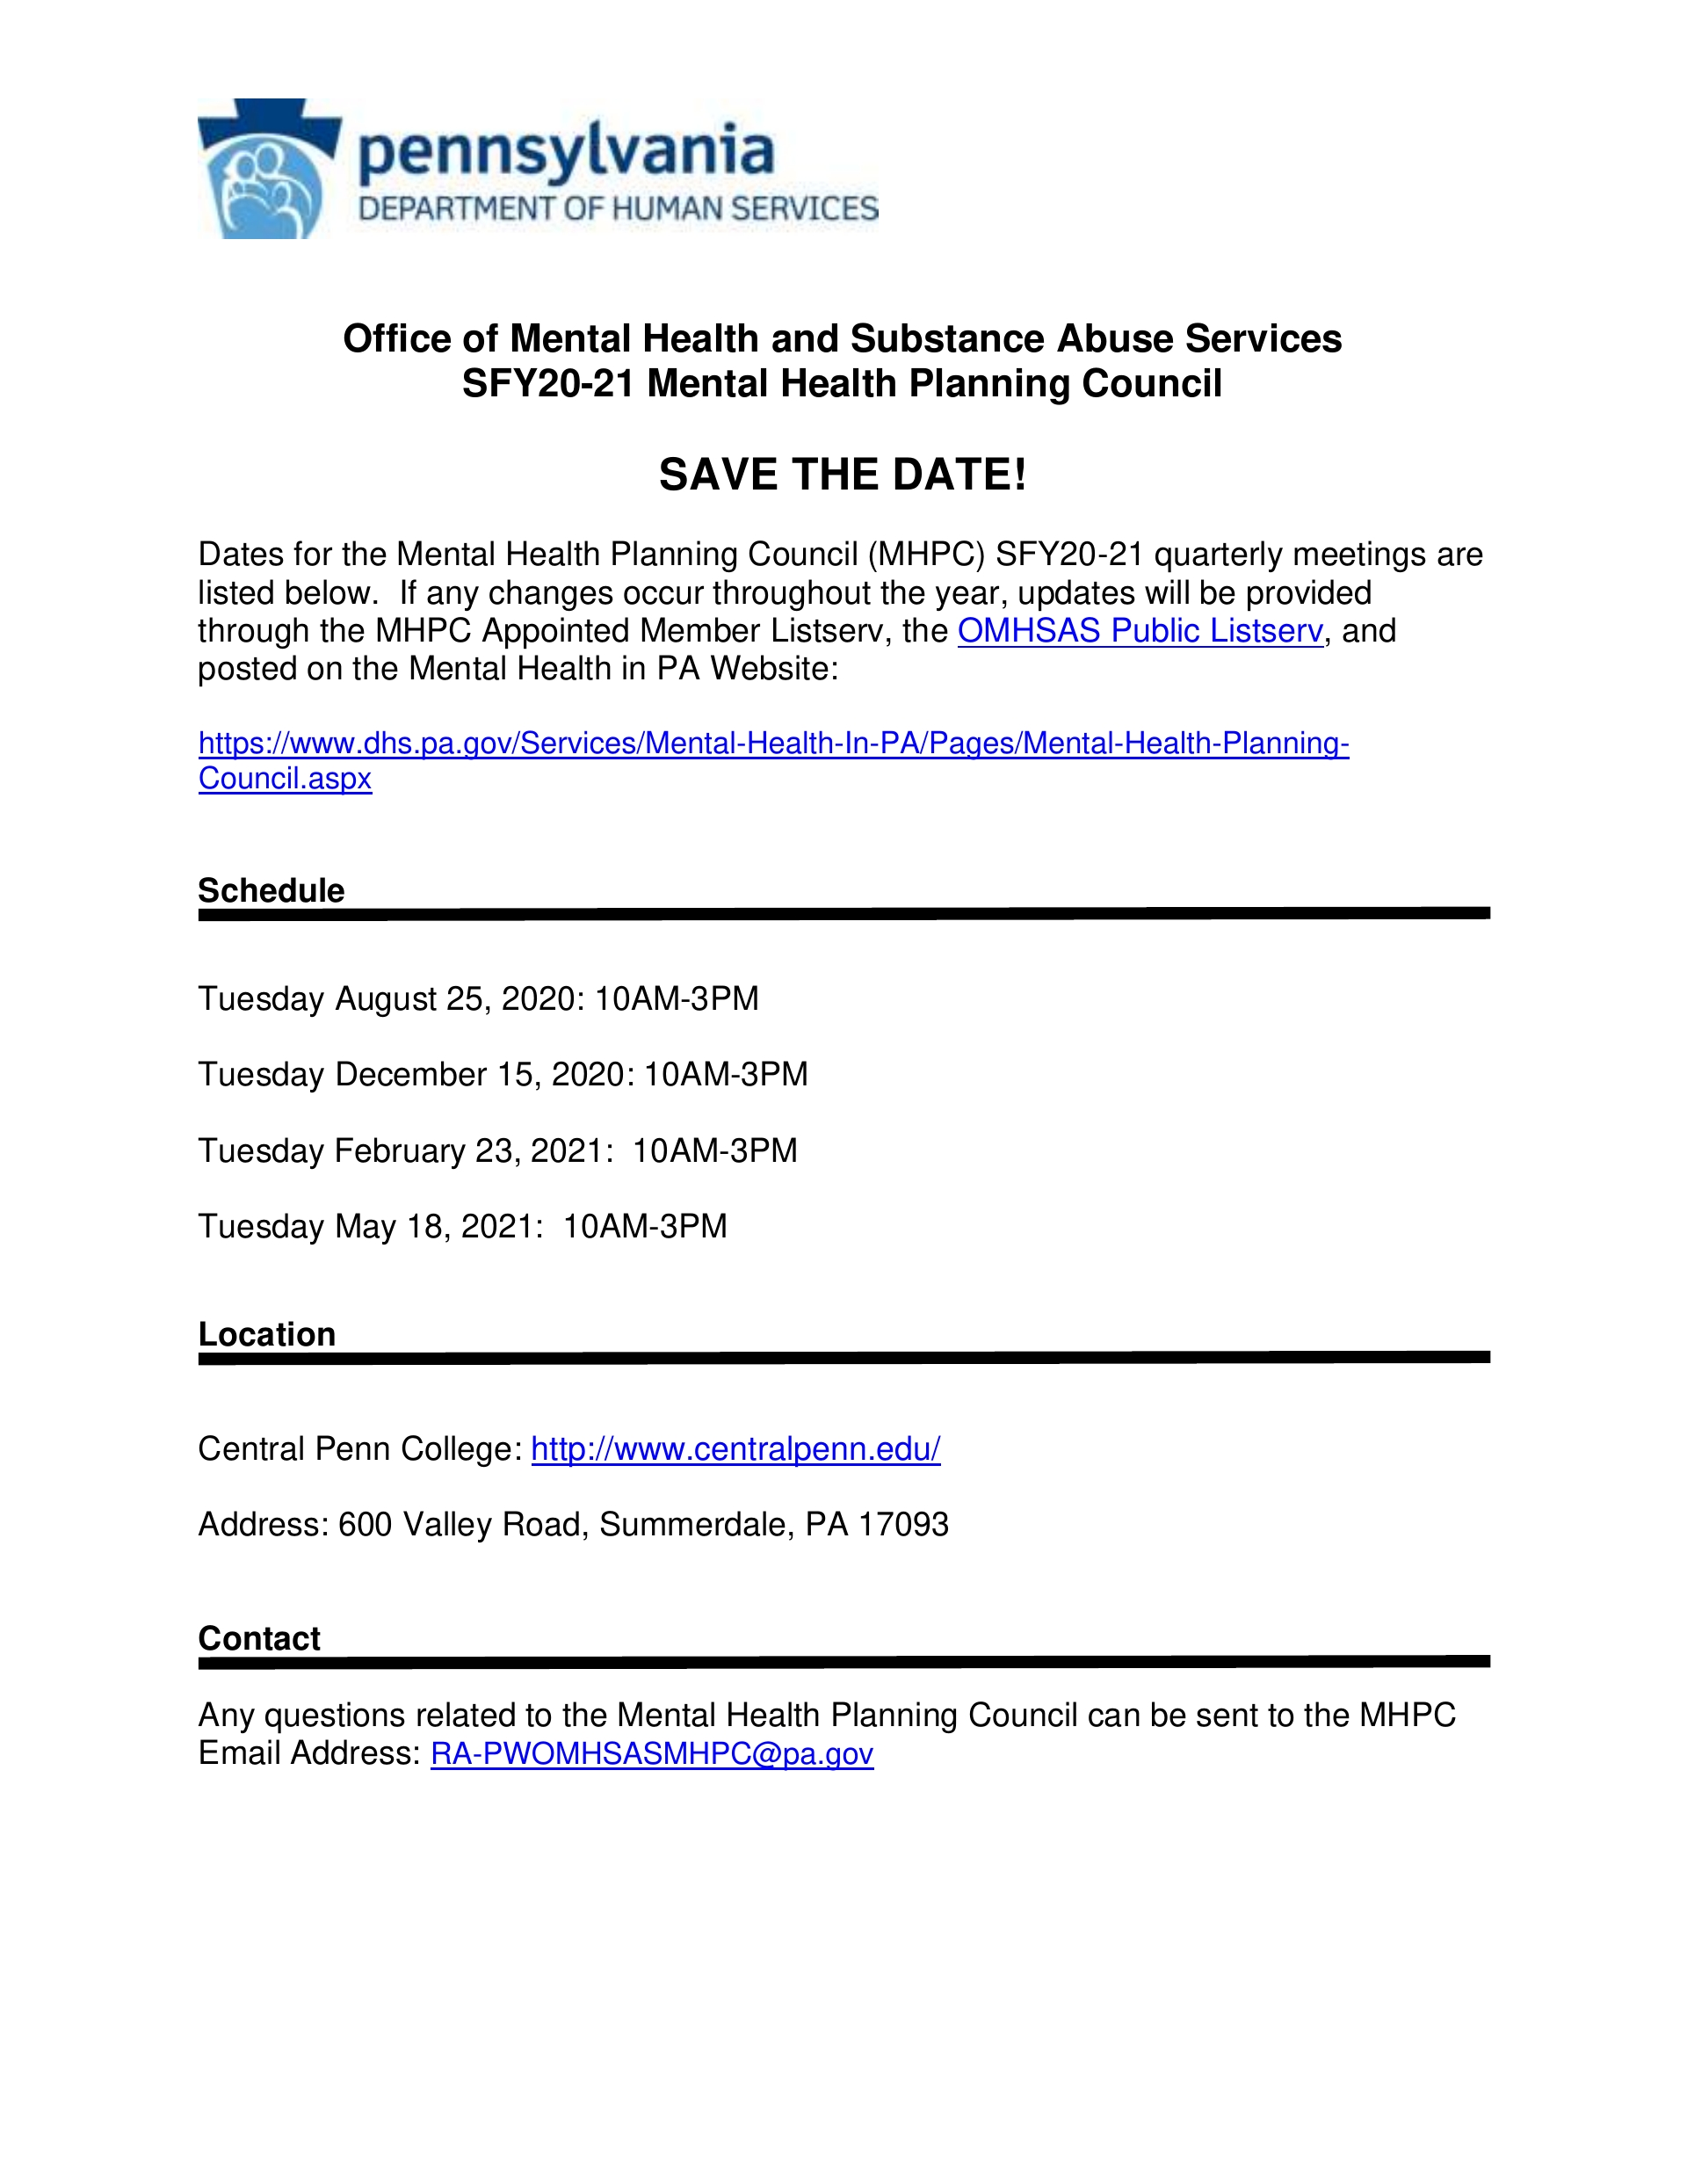 Mental Health Planning Council- OMHSAS/DHS  SAVE THE DATE Family & all others welcome!